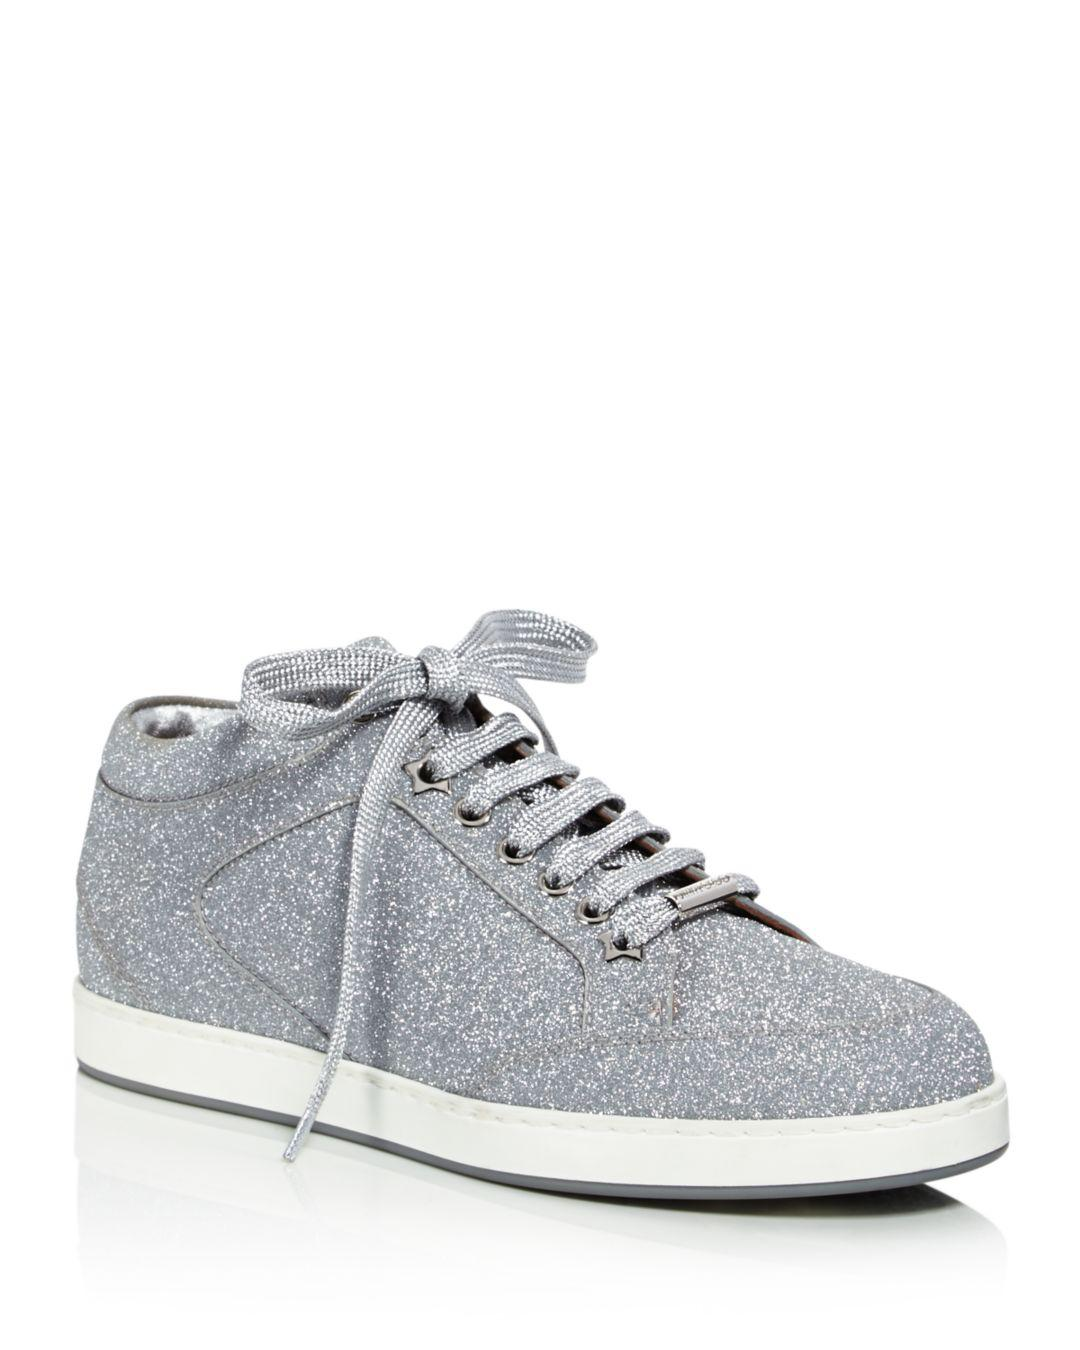 3bcf0efac449 Jimmy Choo. Metallic Women s Miami Glitter Leather Low Top Lace Up Sneakers